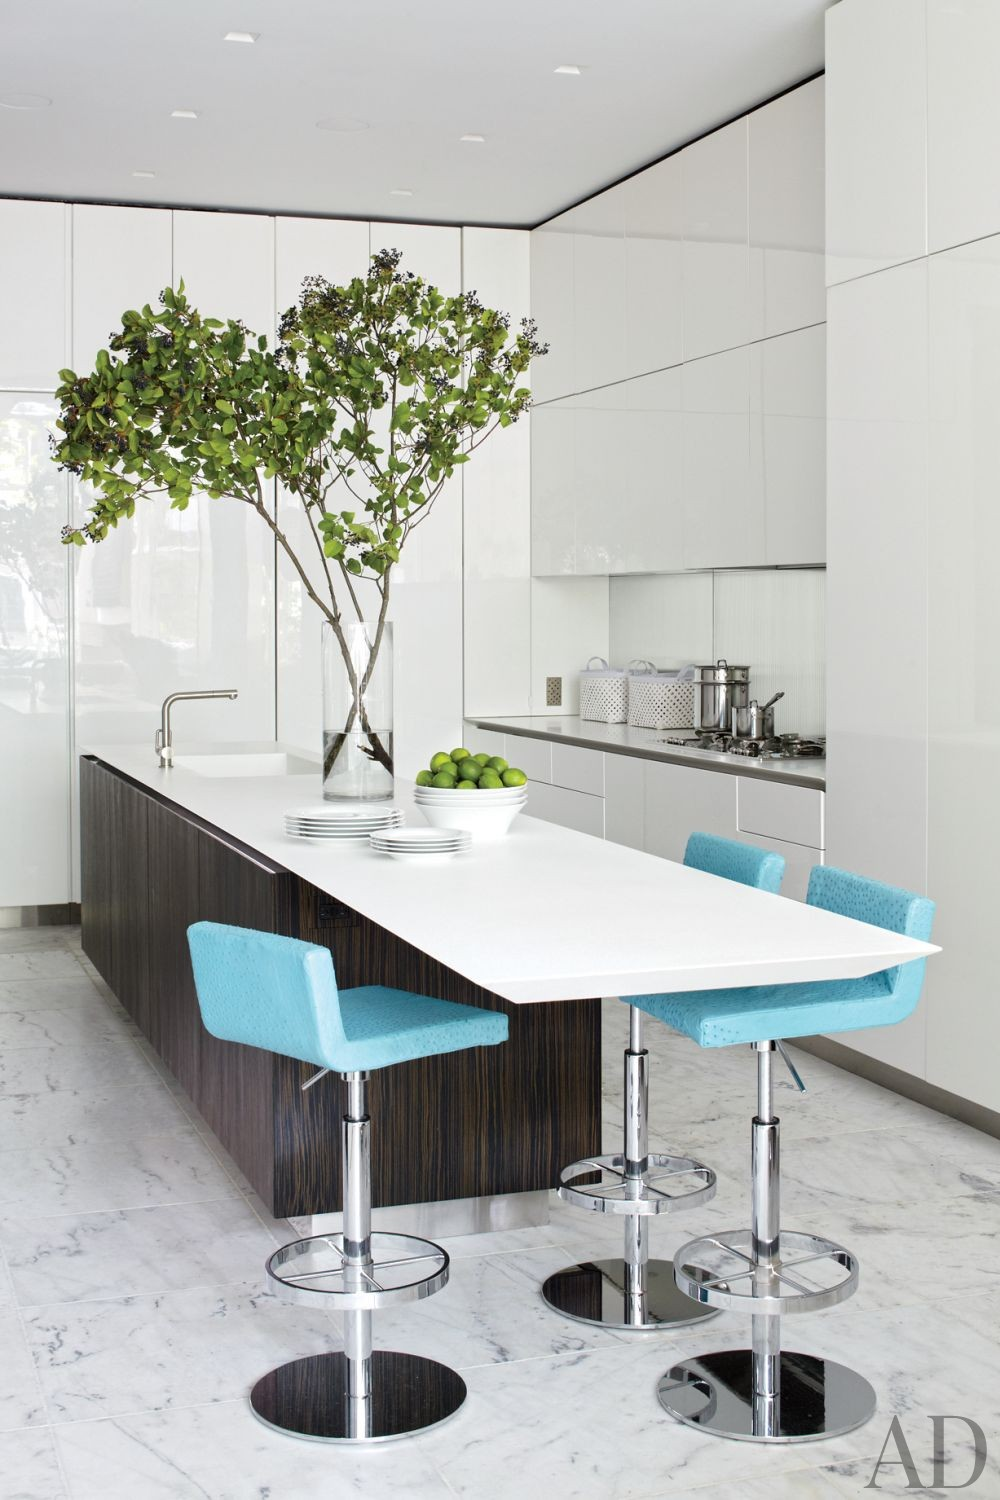 Contemporary Kitchen by Pamplemousse Design and Oliver Cope Architect in New York, New York